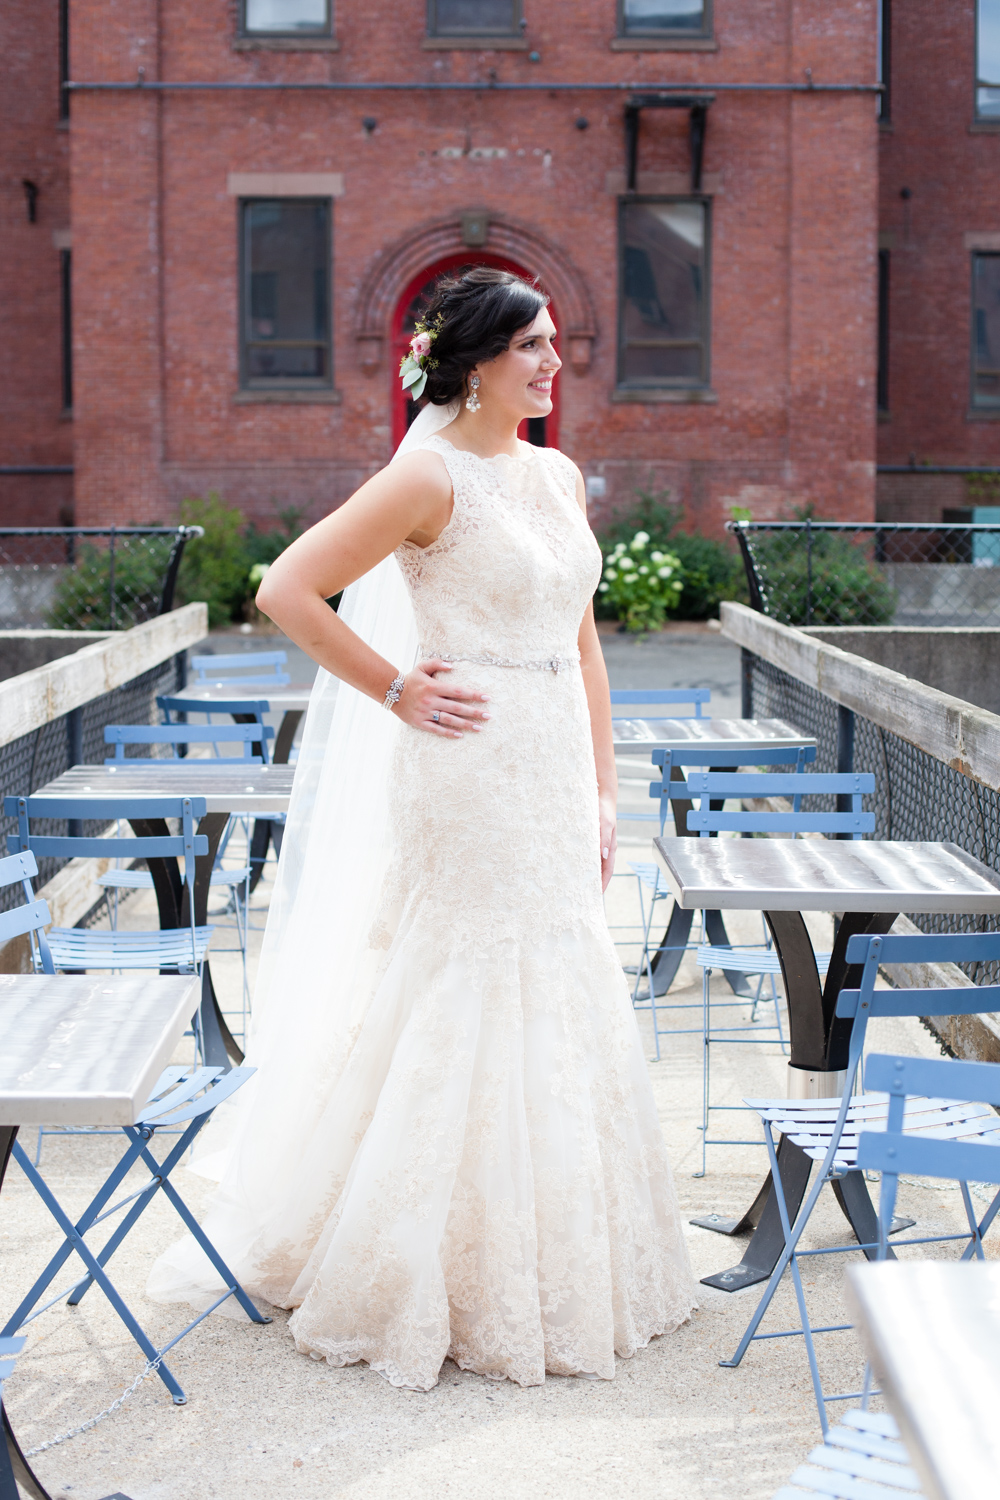 bride mill 1 at open square wedding jp langlands photography